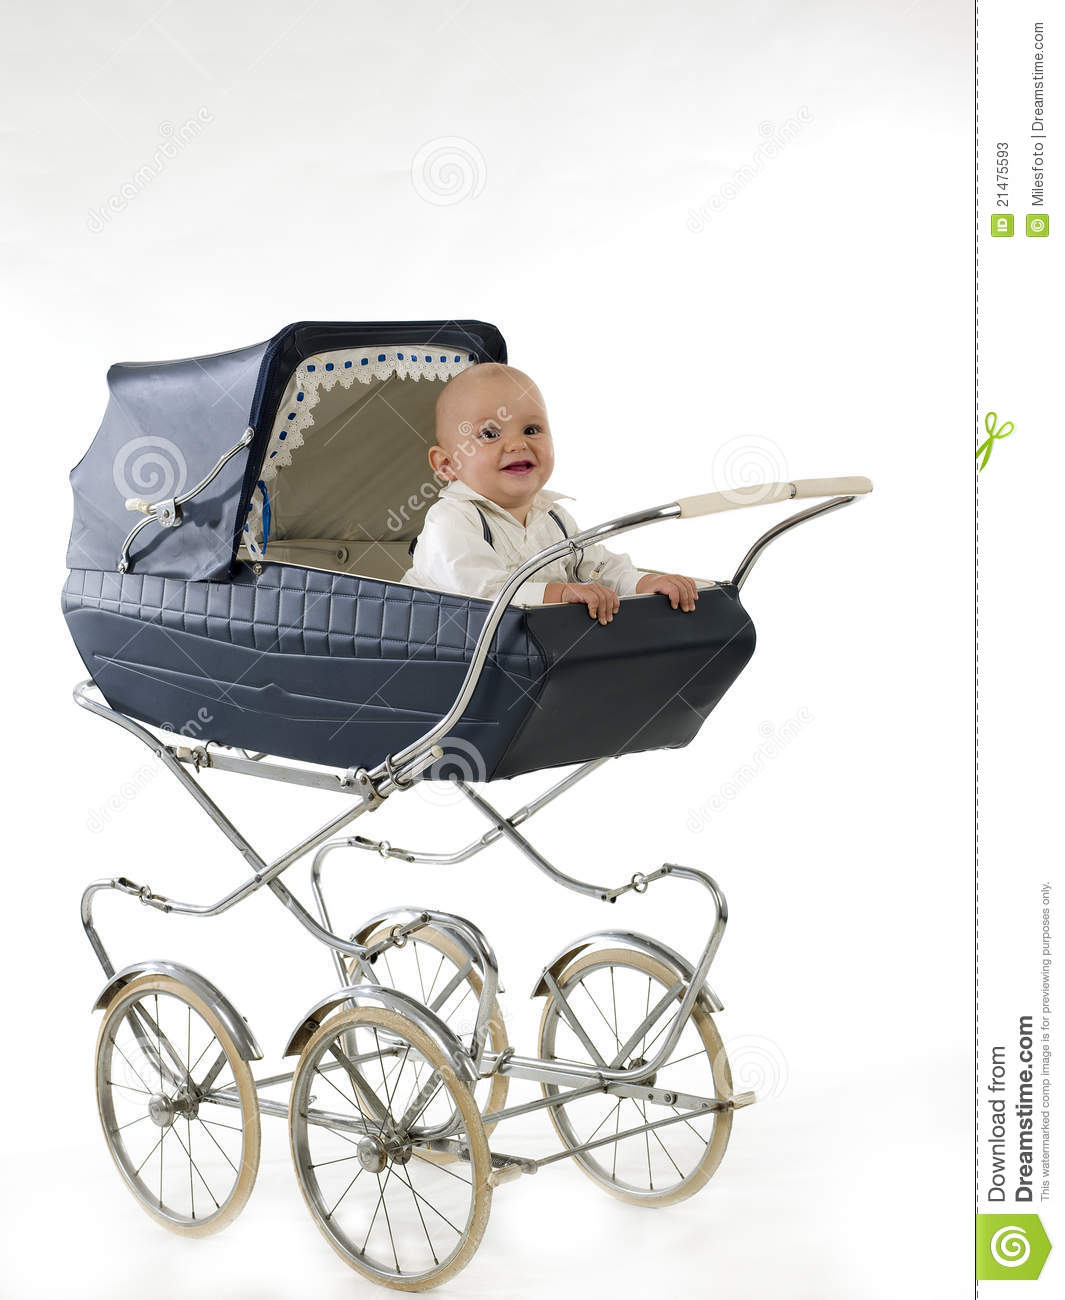 Happy Baby In The Stroller Stock Photos - Image: 21475593